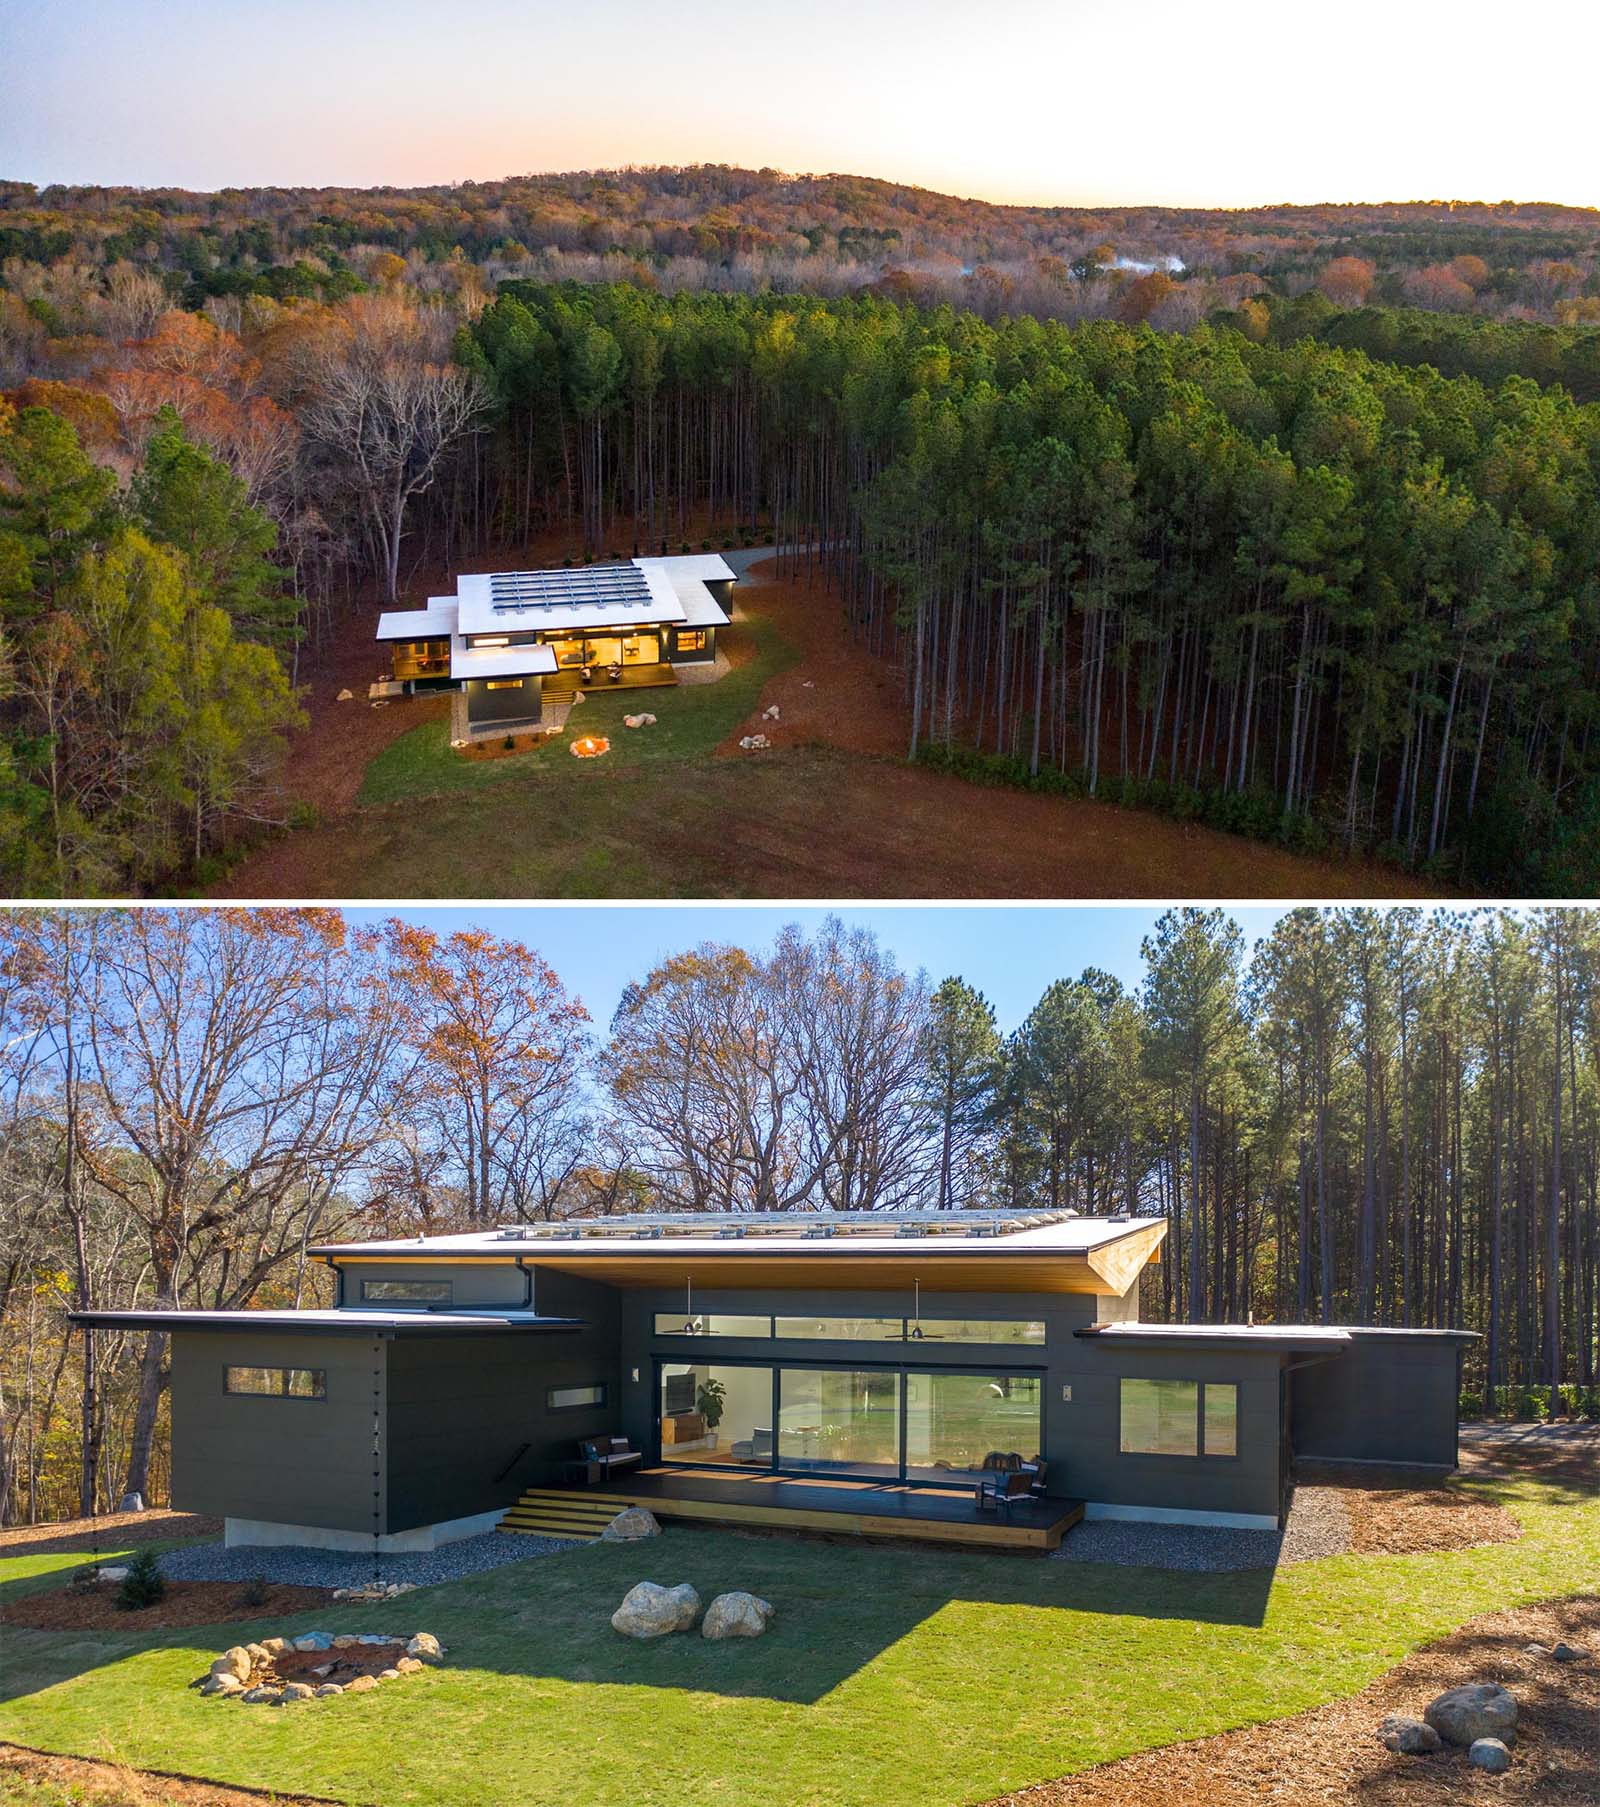 This modern home features a unique roof shape that allows for the inclusion of solar panels.